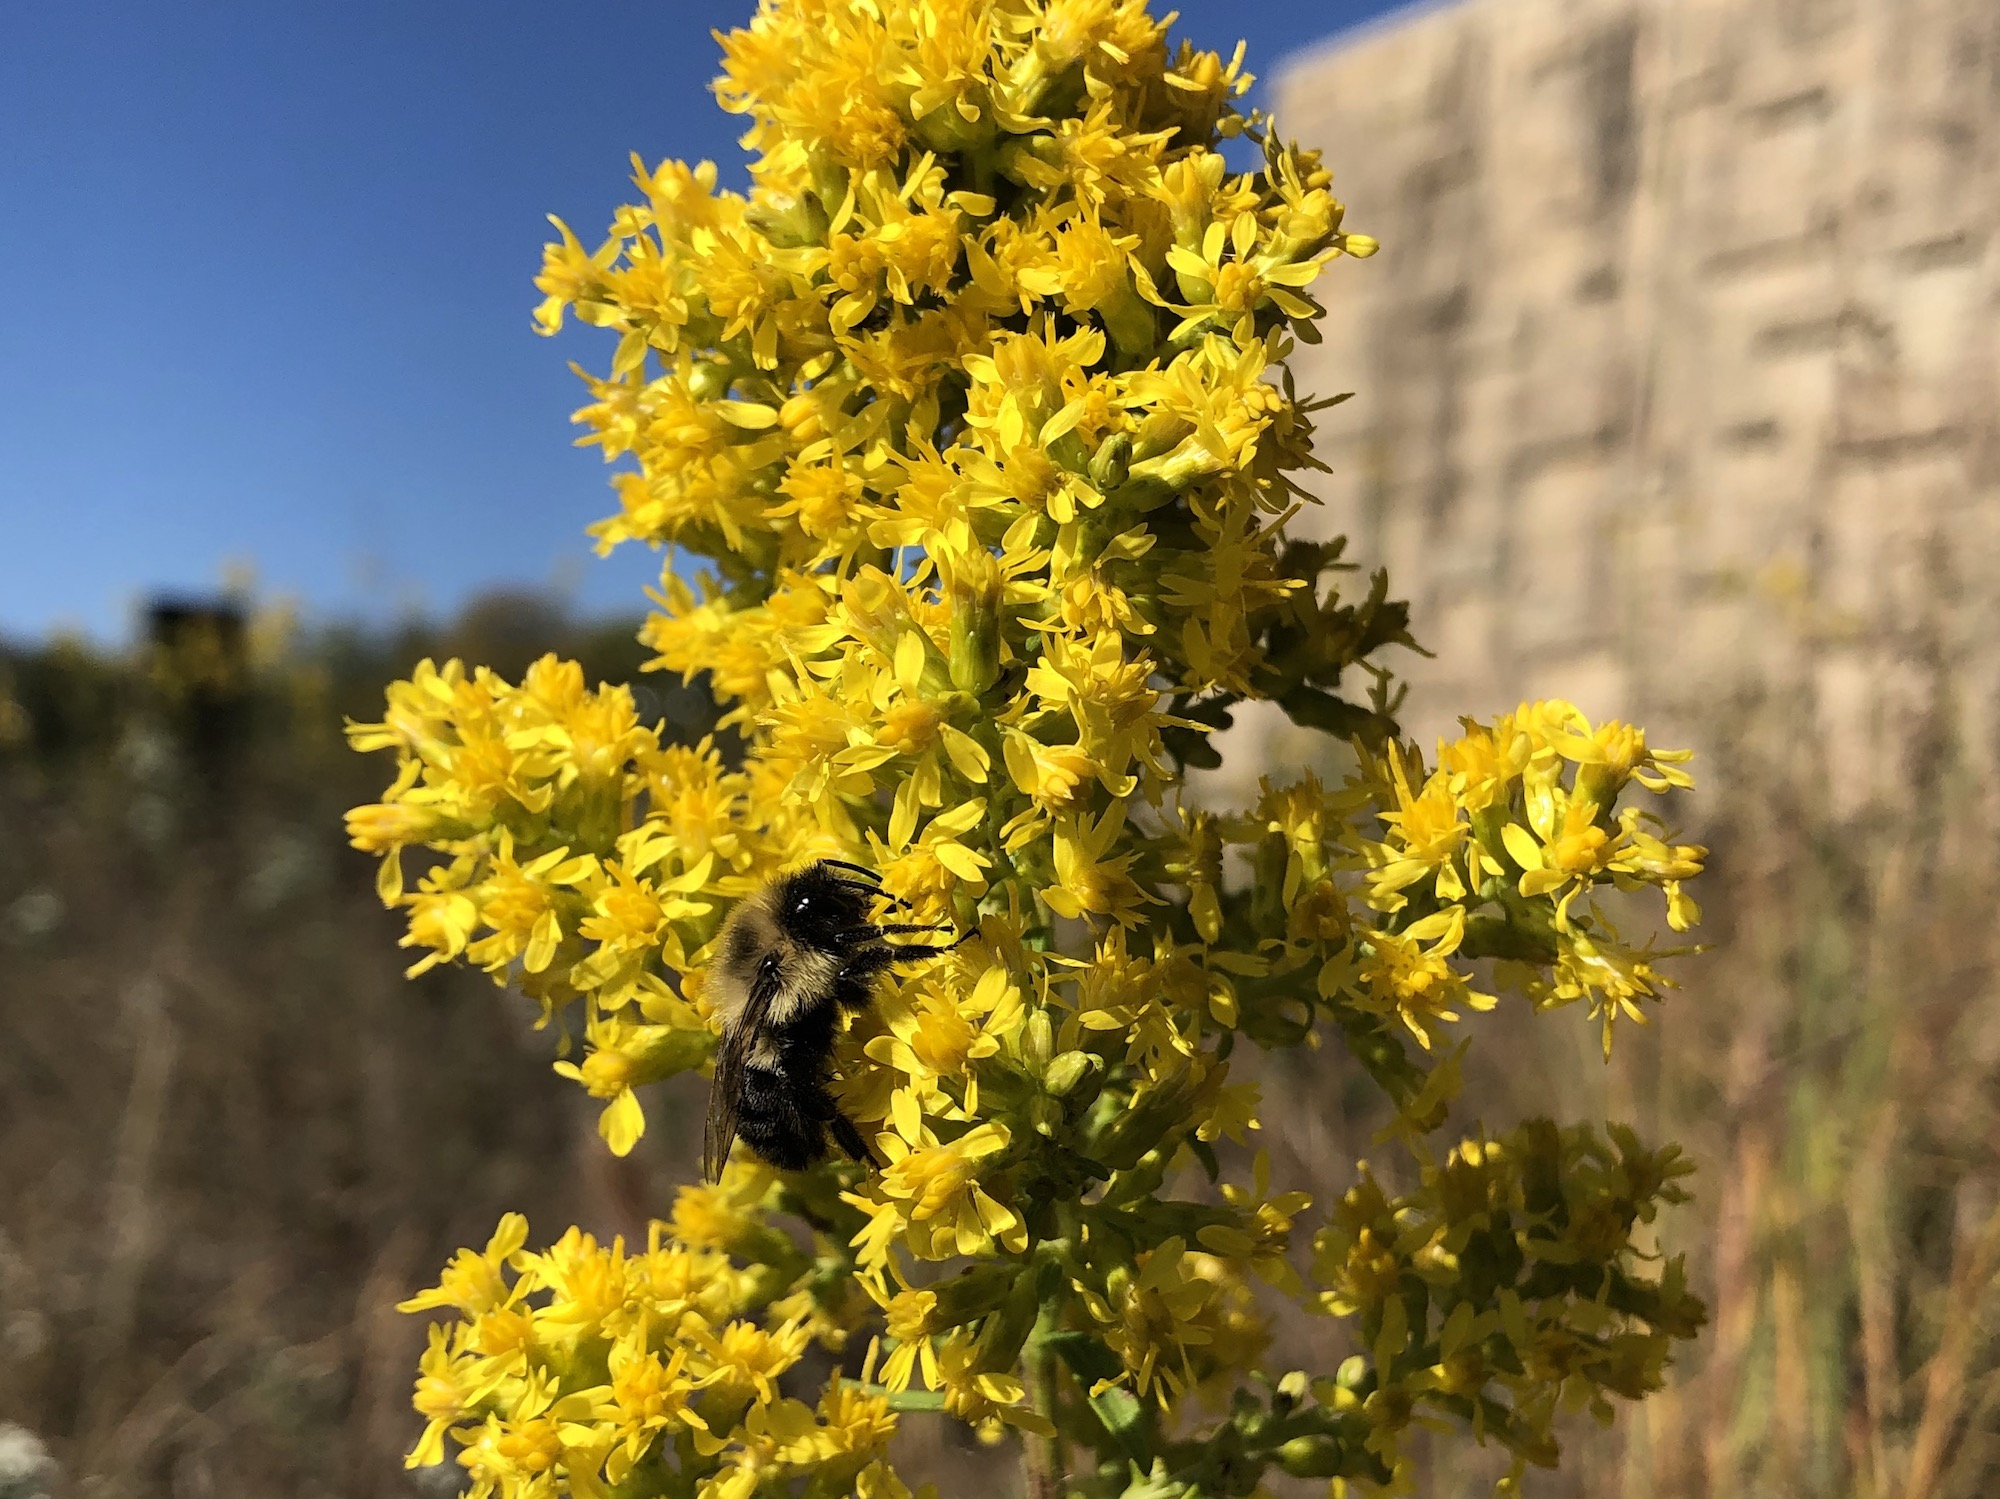 Bumblebee on Showy Goldenrod on October 7, 2020.